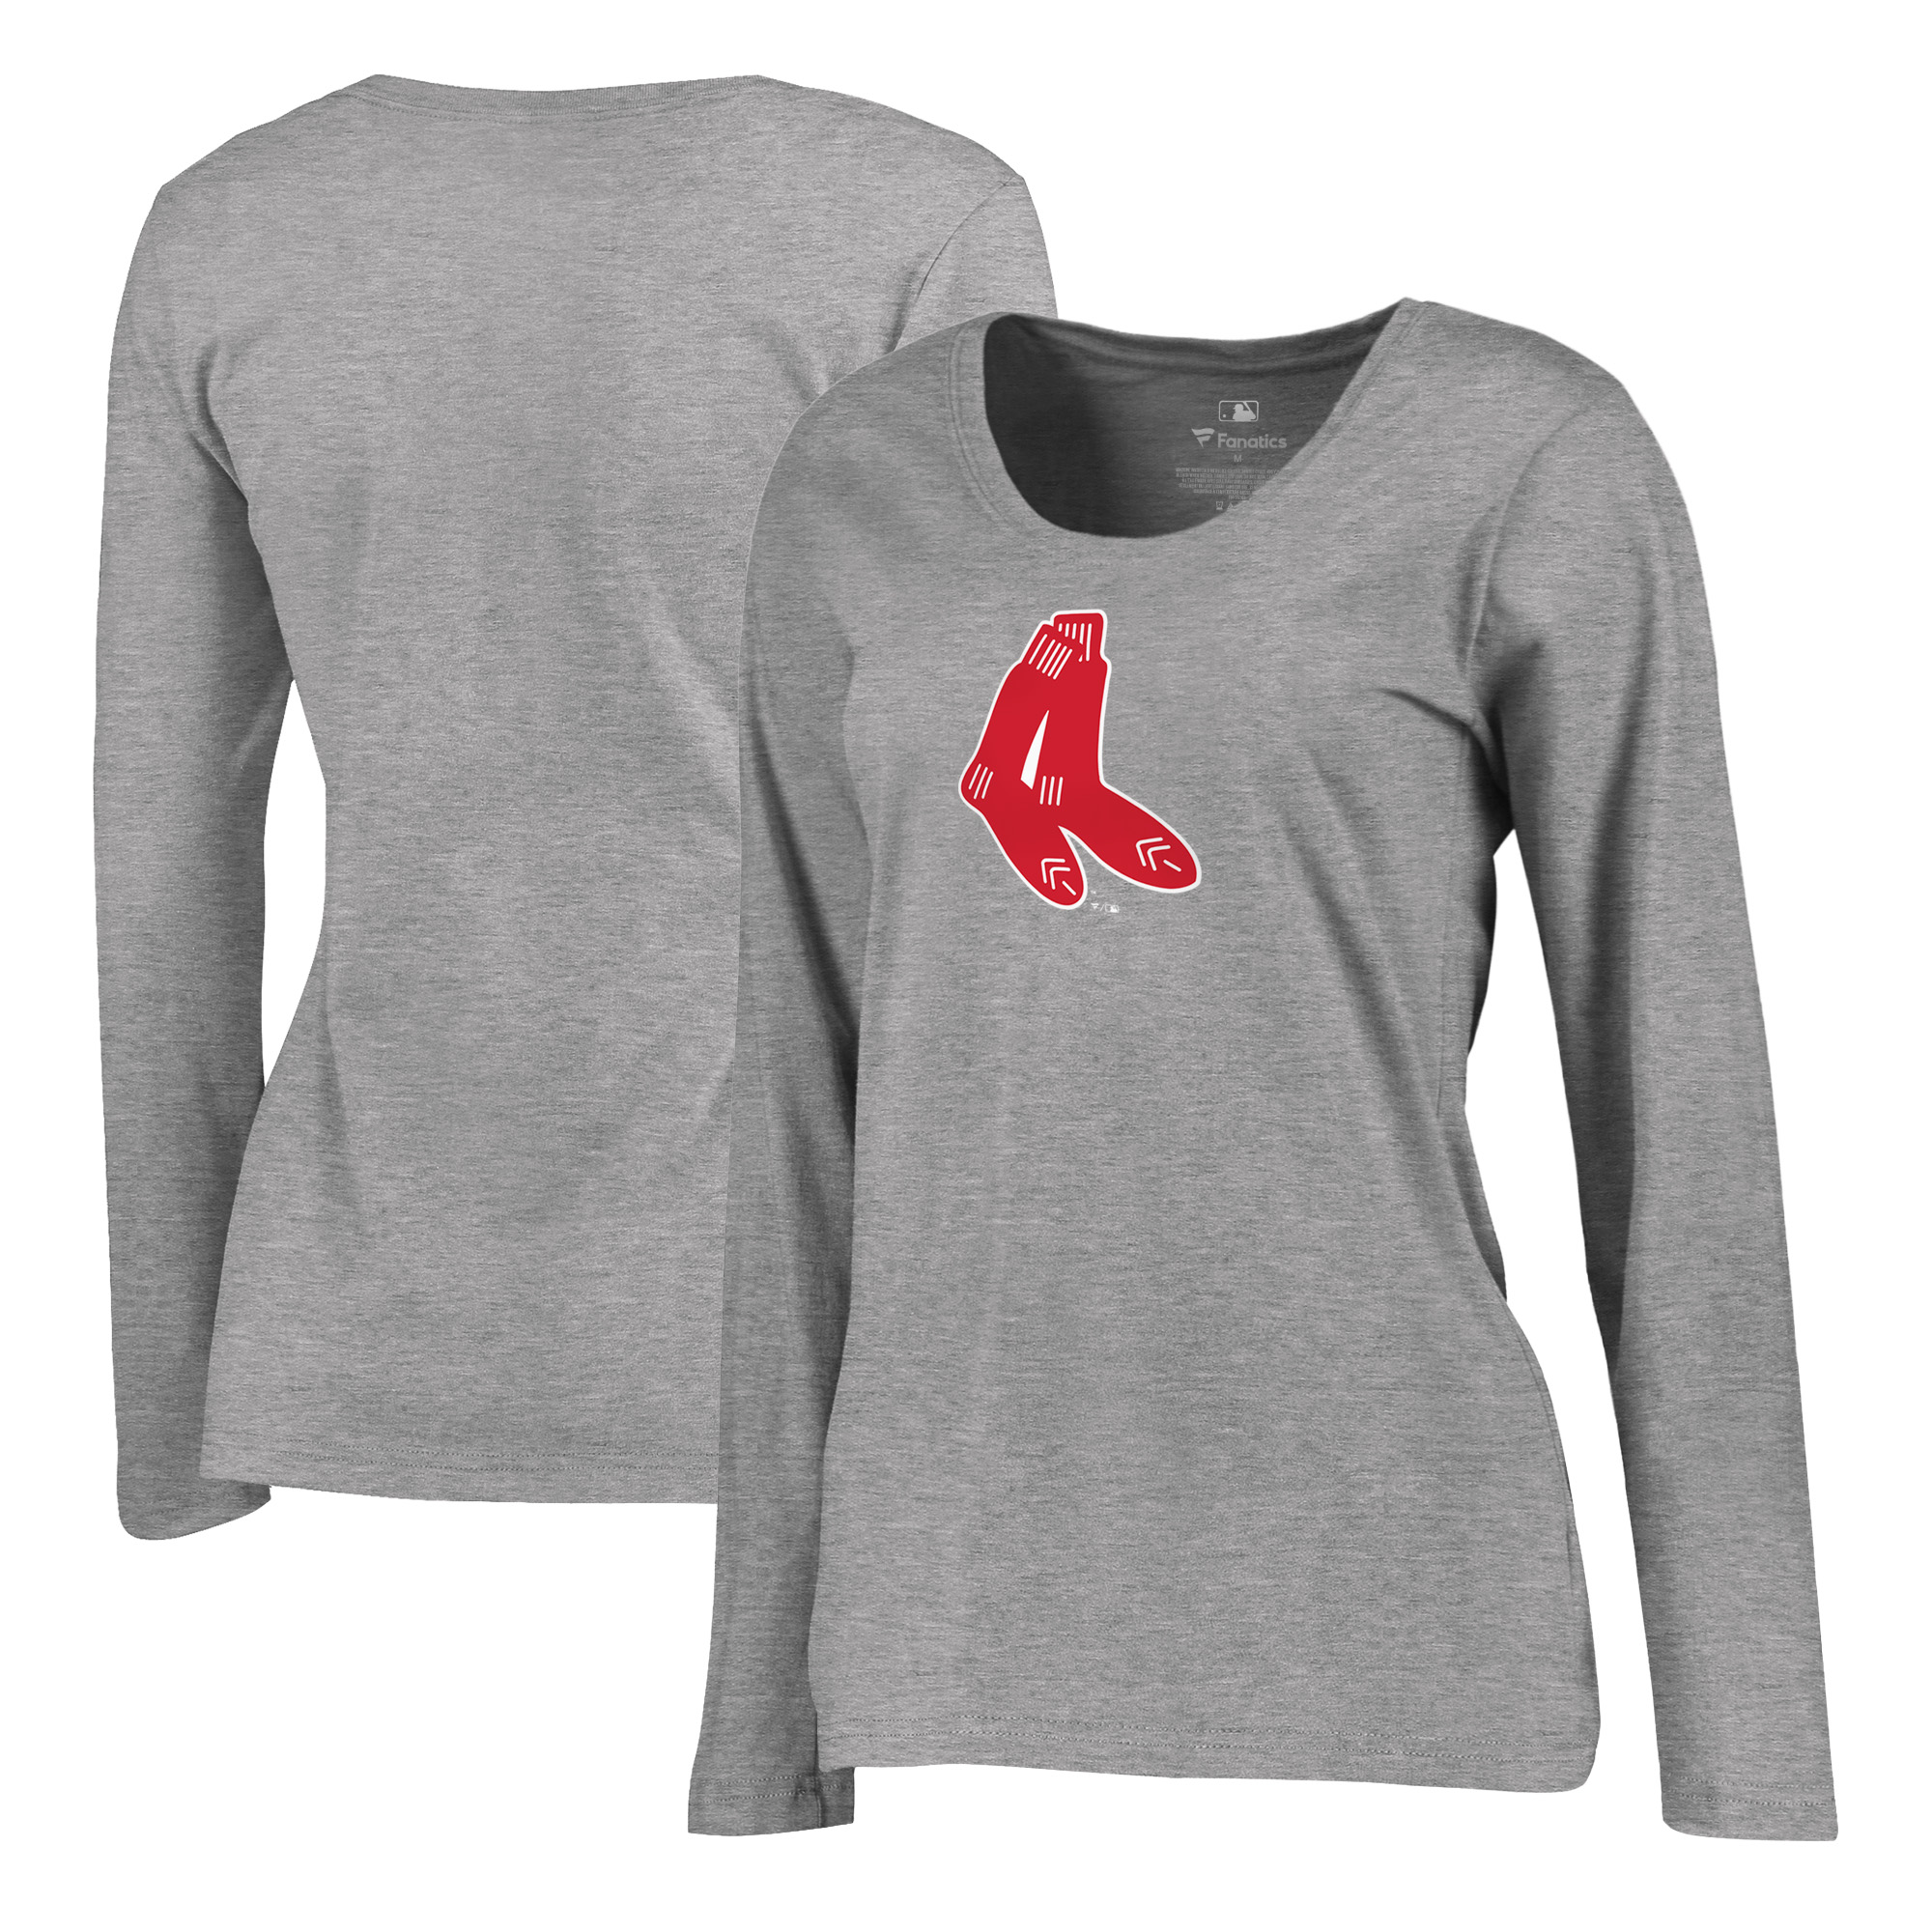 Boston Red Sox Fanatics Branded Women's Plus Size Cooperstown Collection Huntington Long Sleeve T-Shirt - Heathered Gray